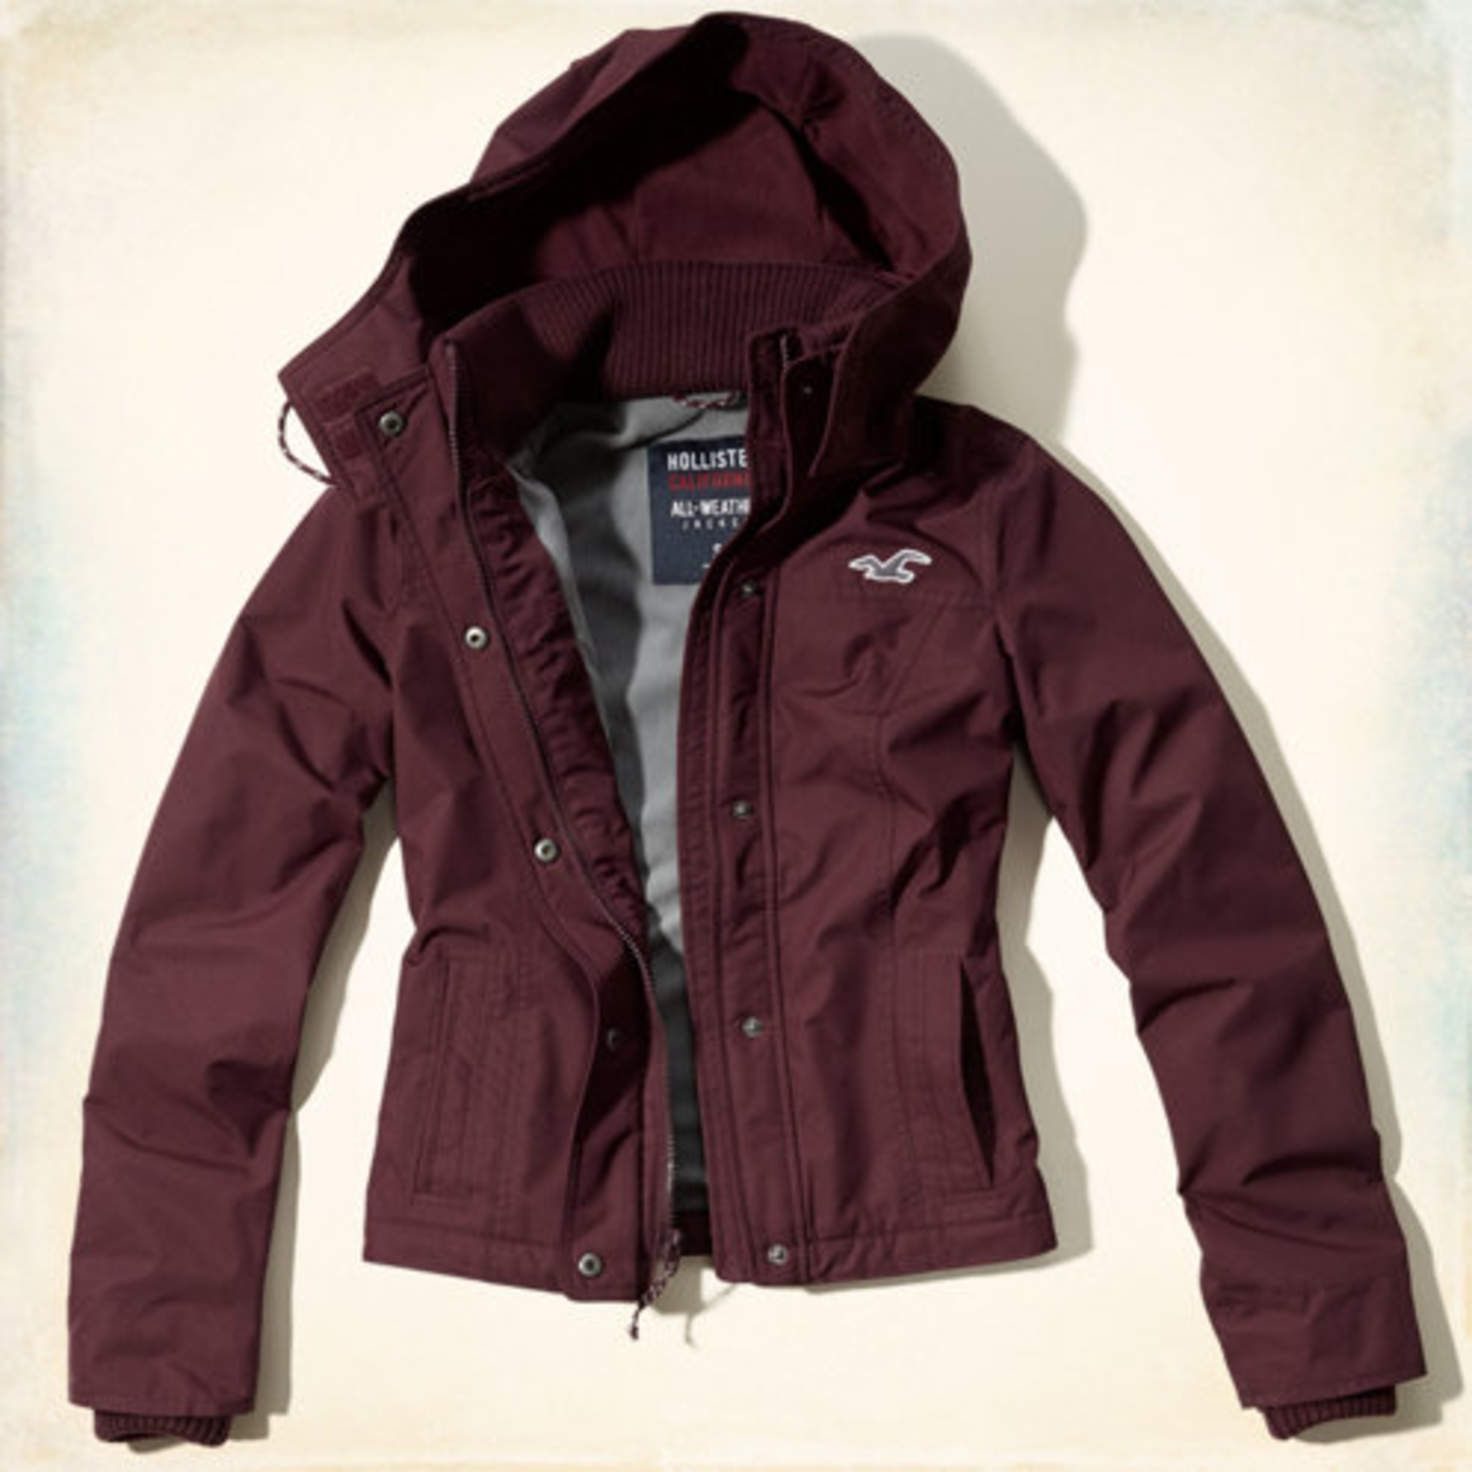 Hollister All The JacketJackeMarken Hollister The Weather wnm8OvN0